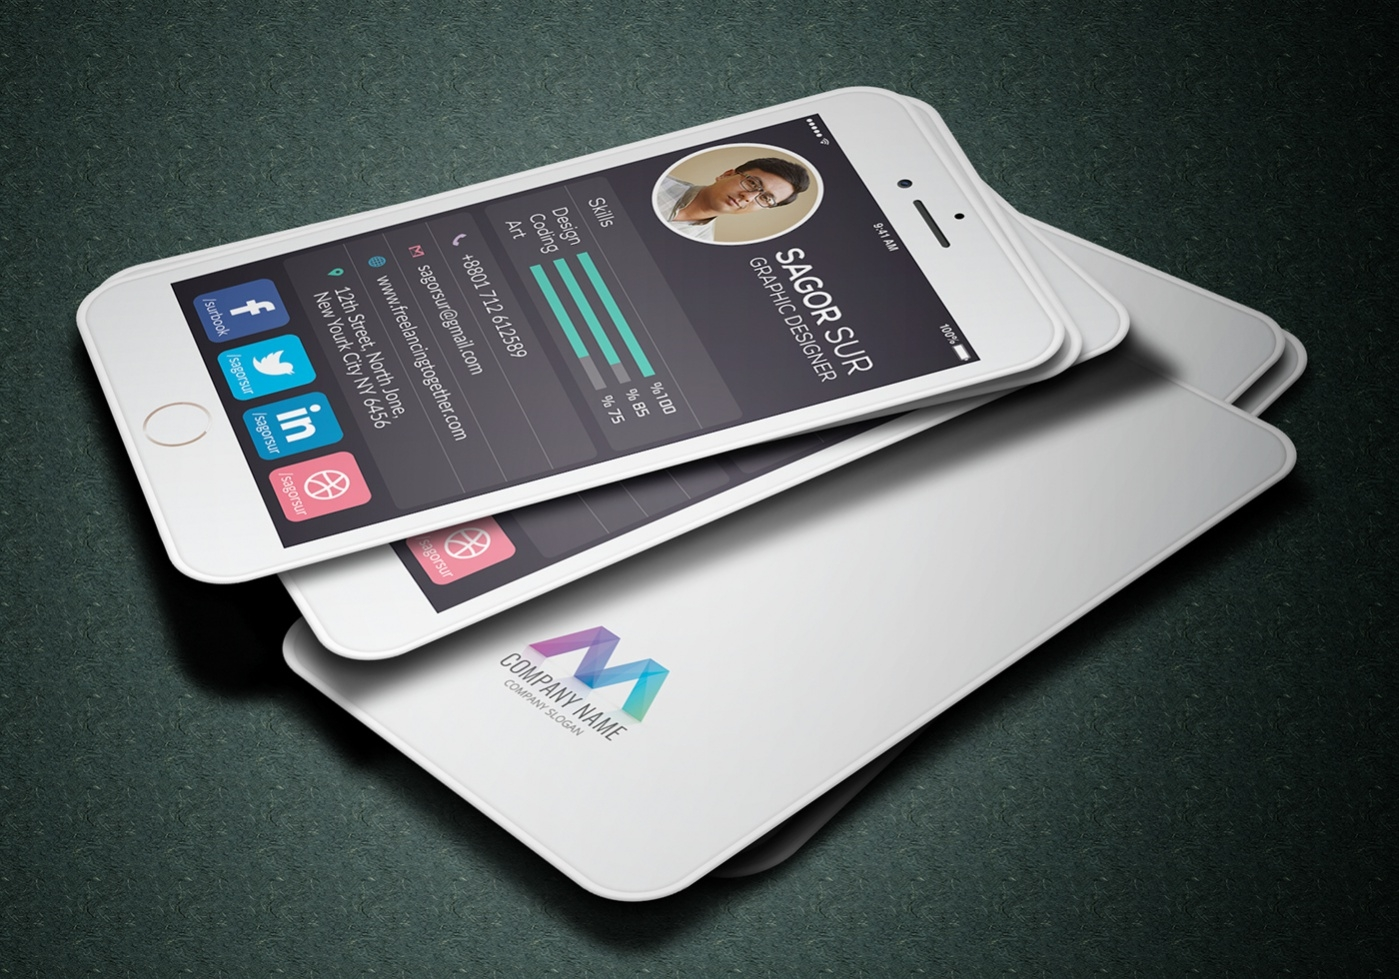 Business card maker on iphone images card design and card template business card template iphone gallery card design and card template creative business cards iphone image collections reheart Images